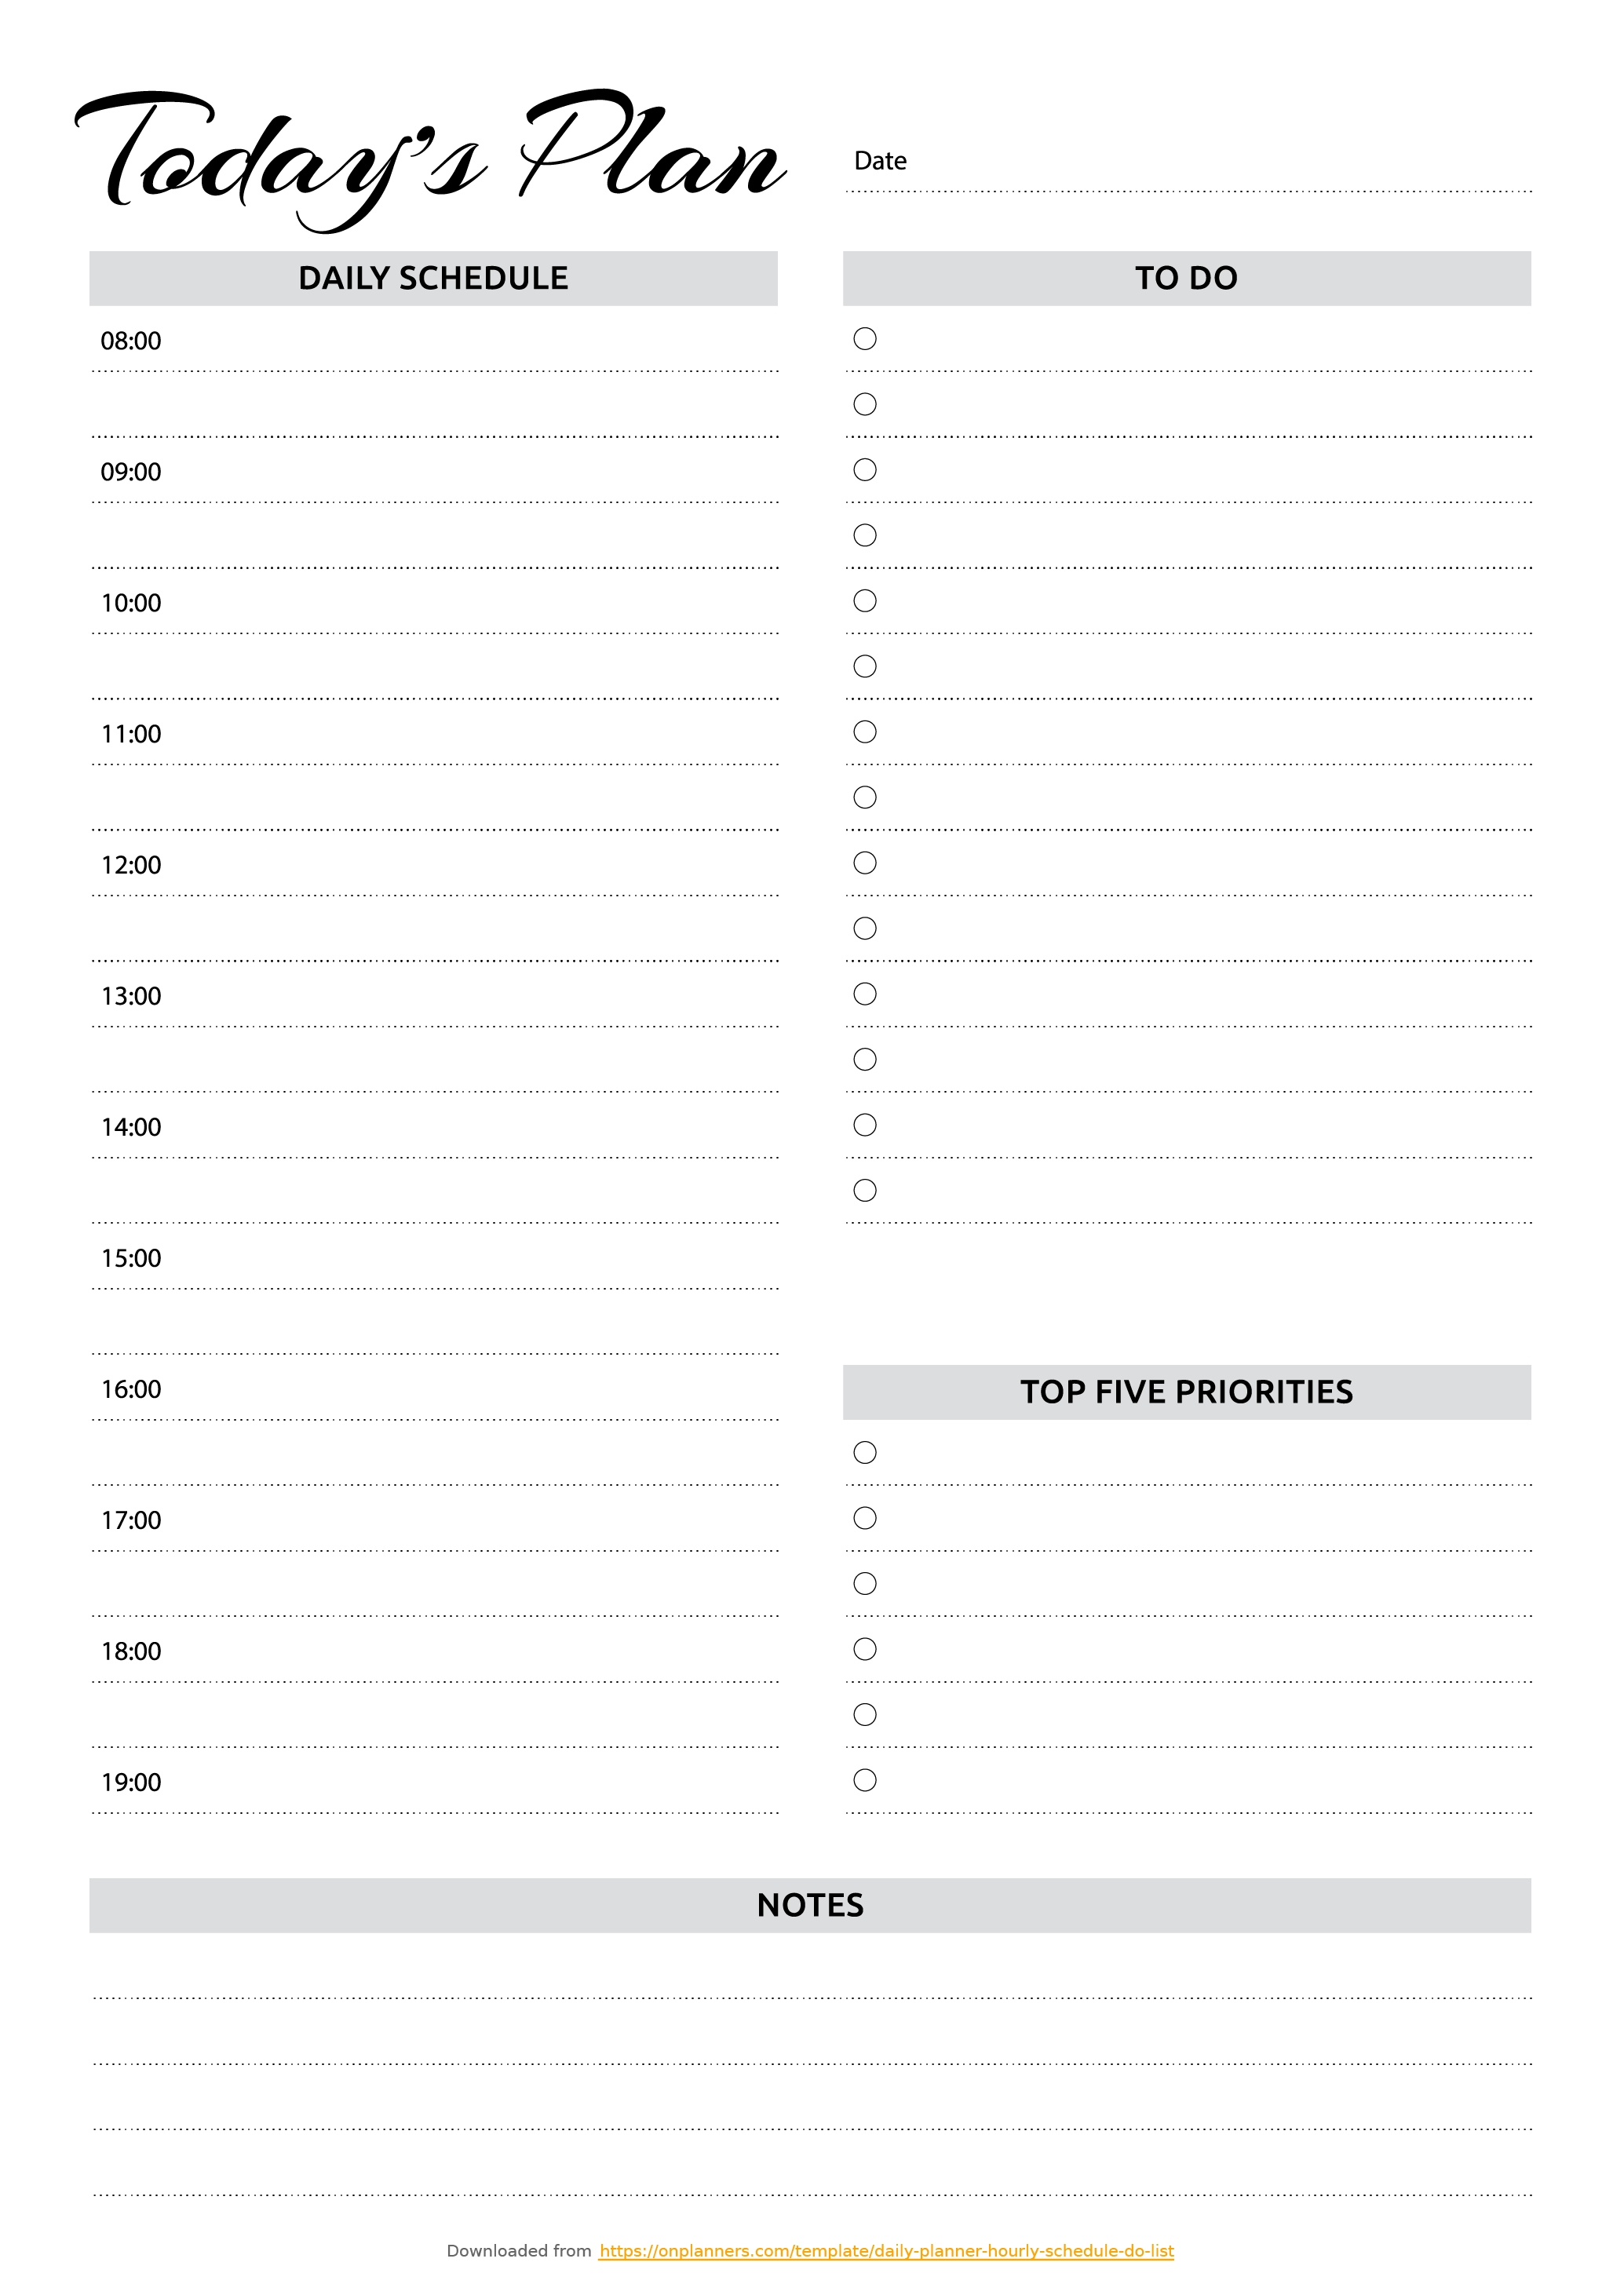 Free Printable Daily Planner With Hourly Schedule & To-Do List Pdf in Free Printable Hourly Weekly Schedule Pdf